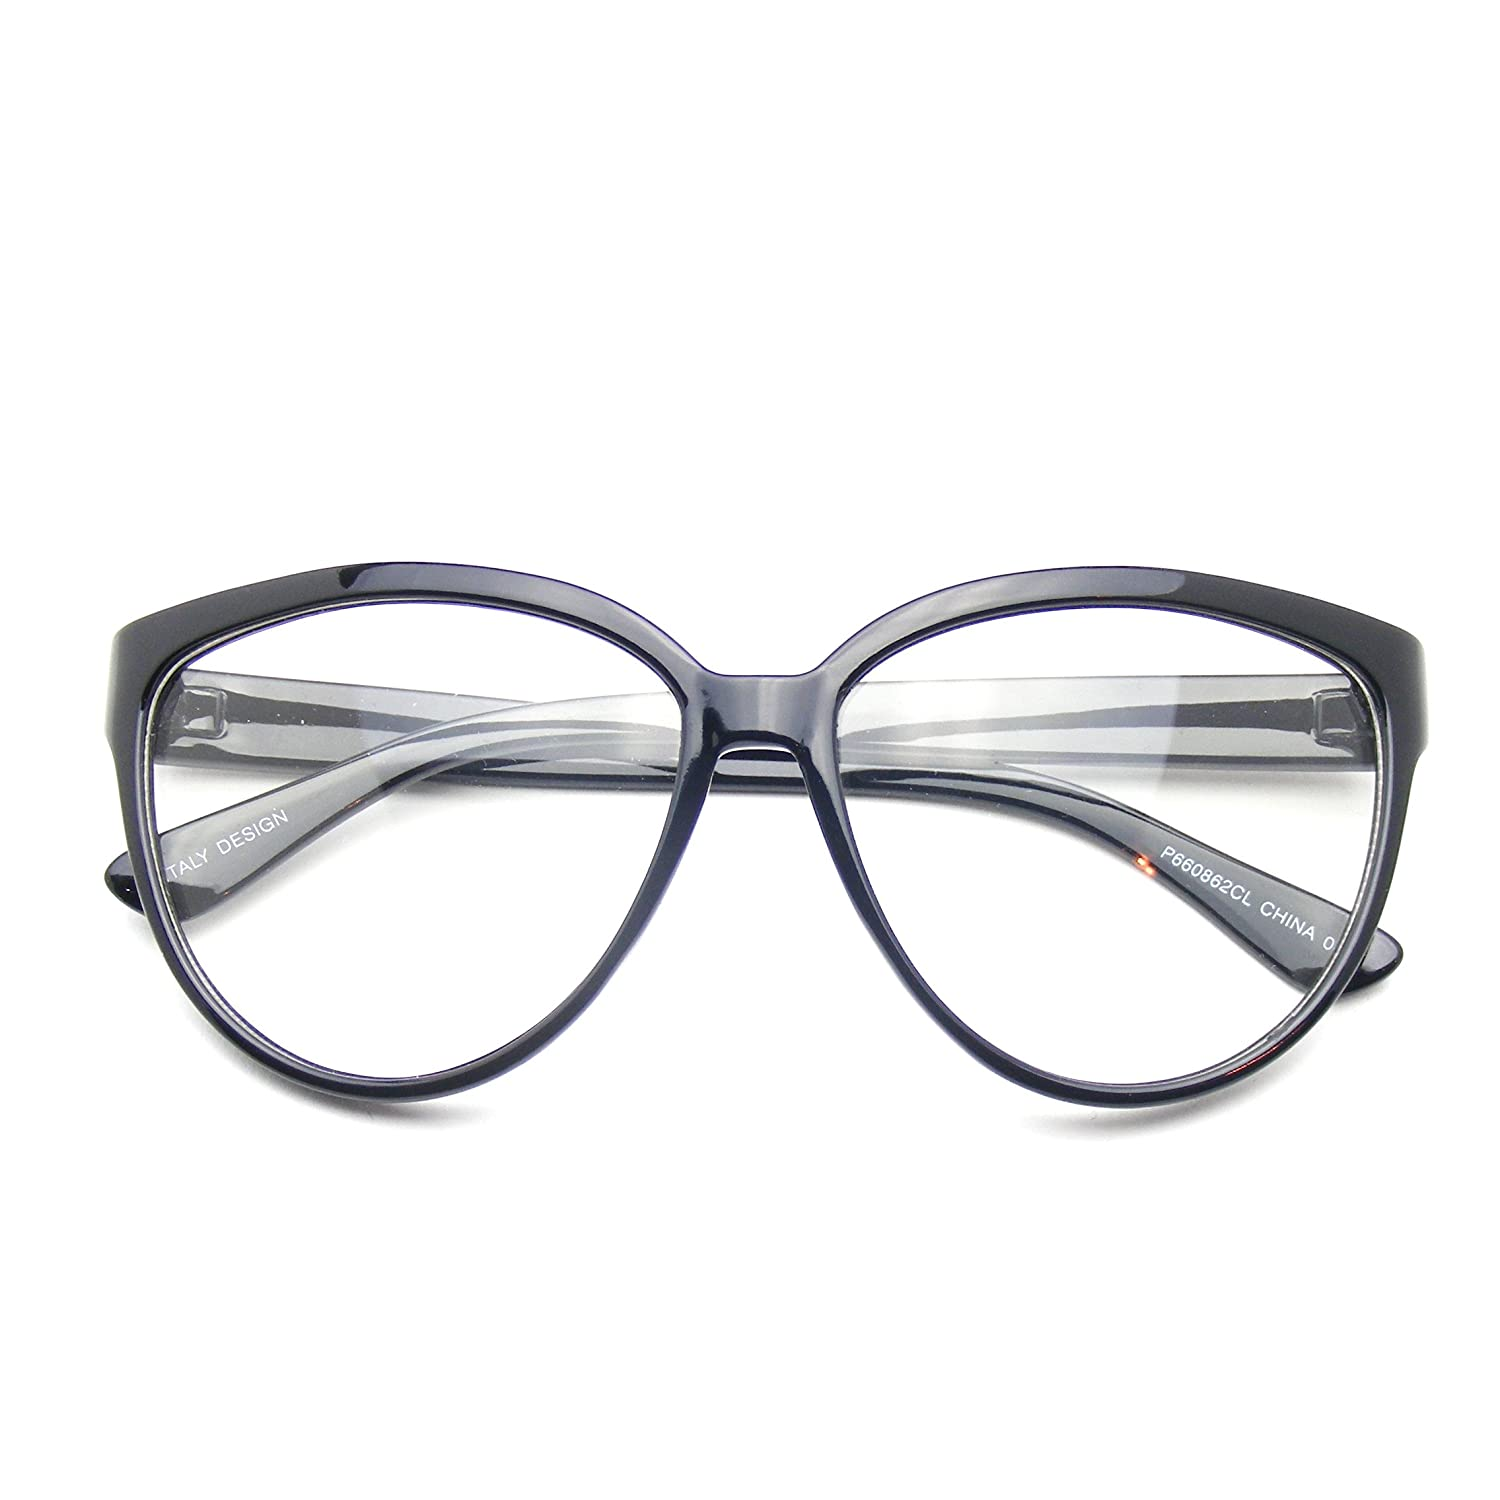 4a2d0405b21 Amazon.com  Womens Oversize Retro Nerd Clear Lens Fashion Cat Eye Geek  Glasses (Black)  Clothing